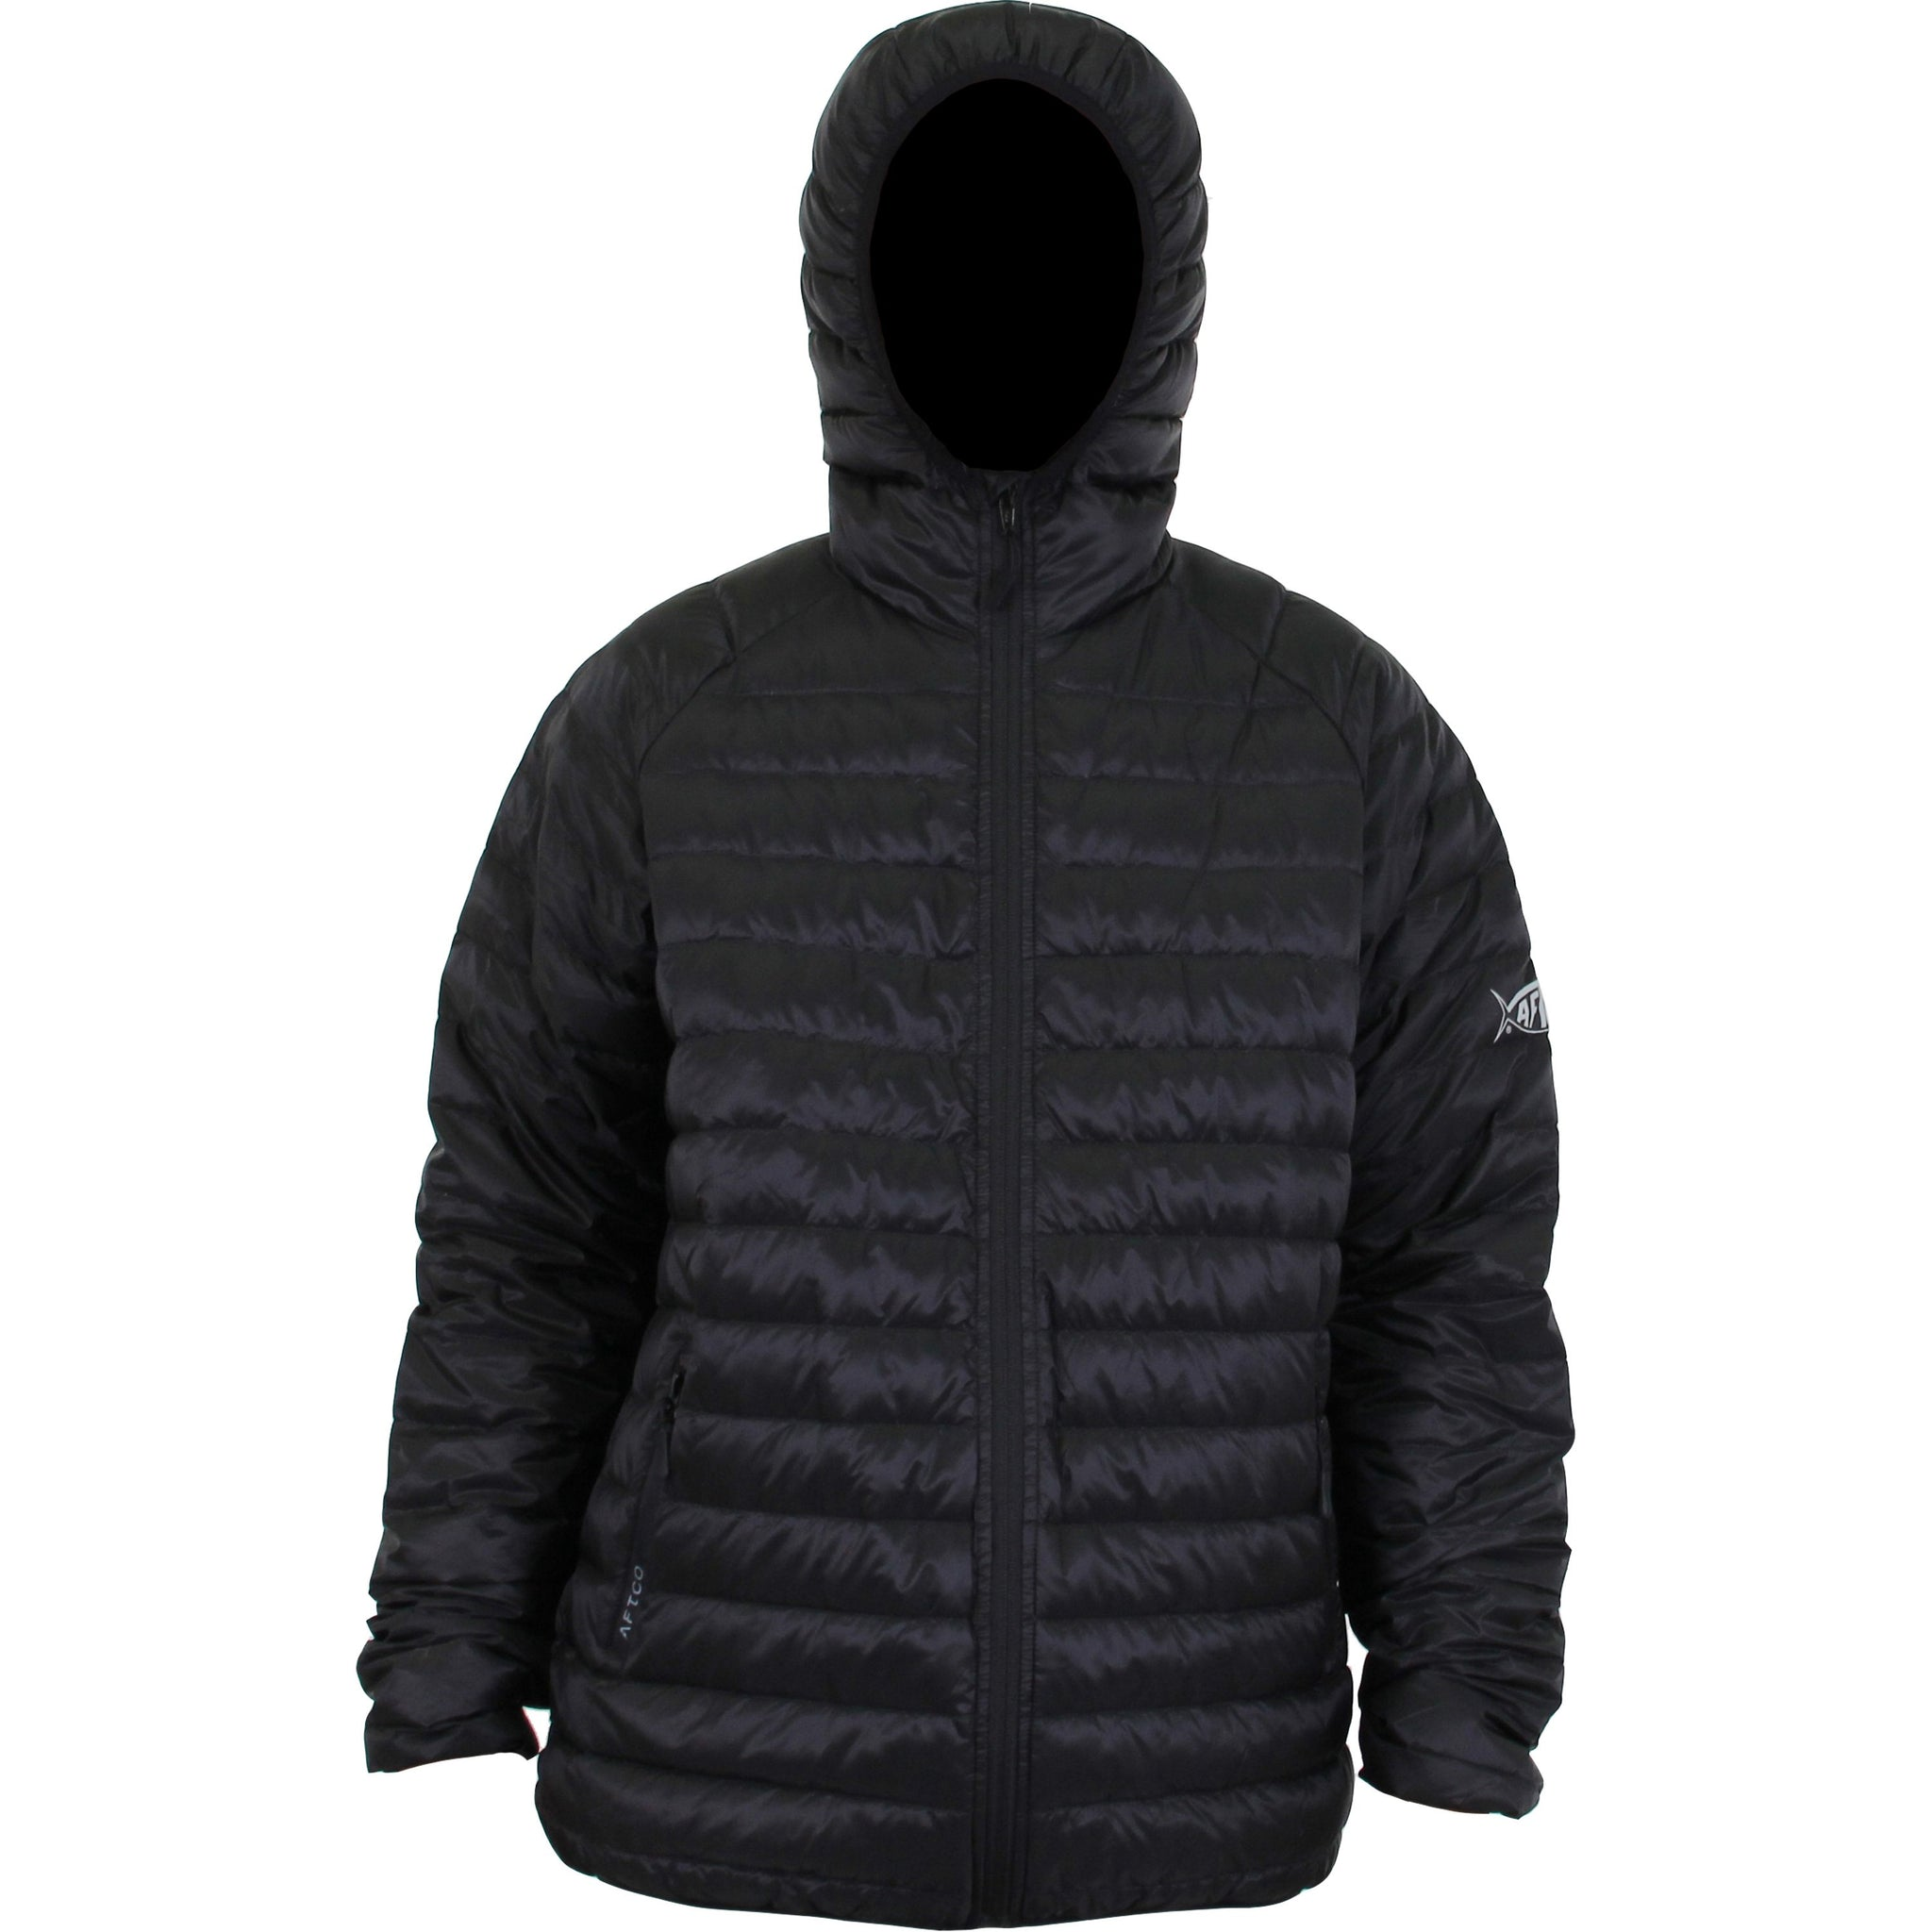 Adder Down Hooded Jacket